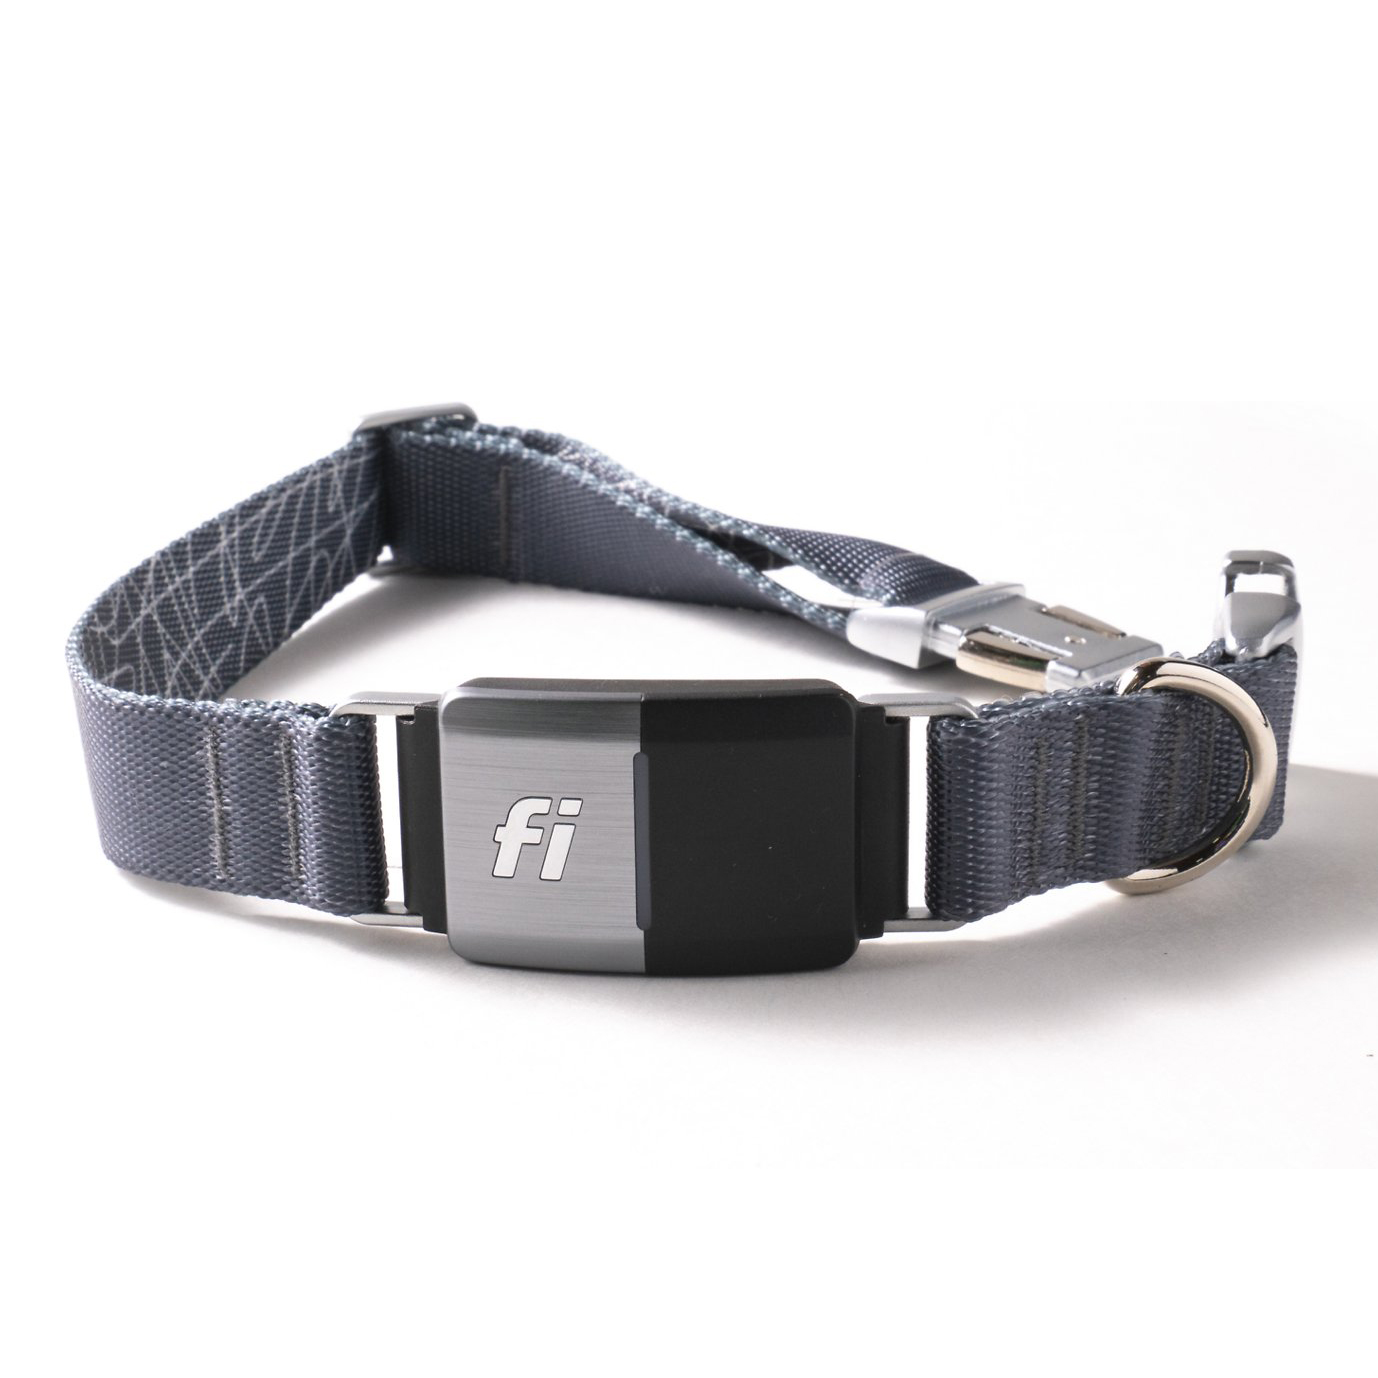 fi-series-2-smart-dog-collar